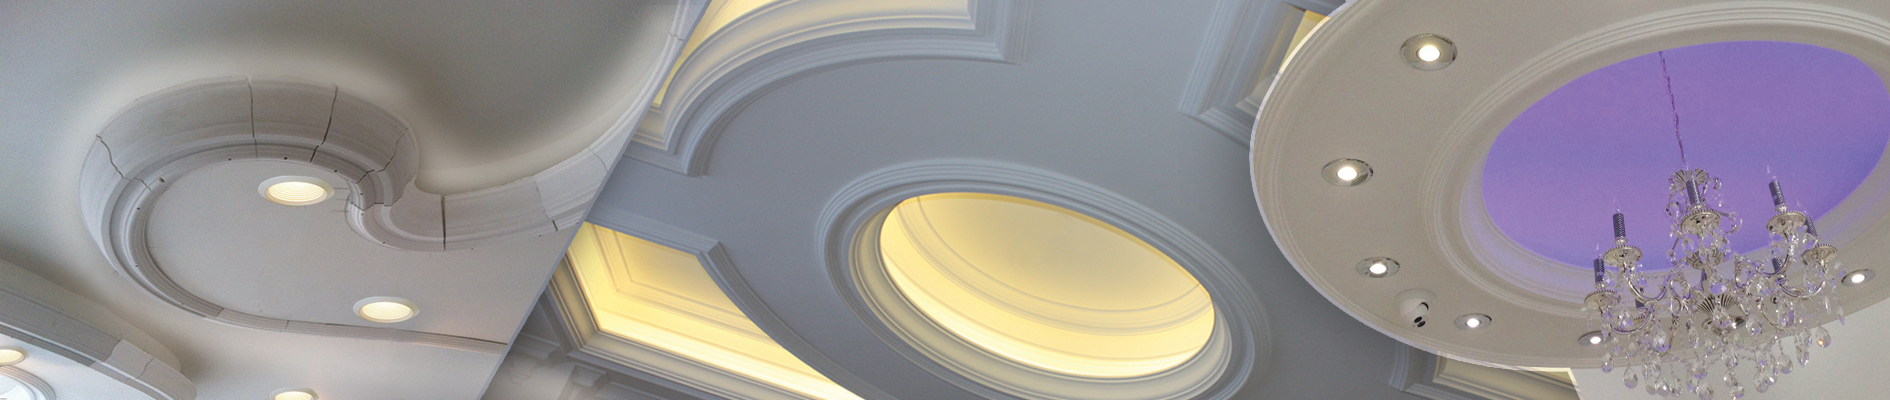 Indirect lighting, Crown Moulding